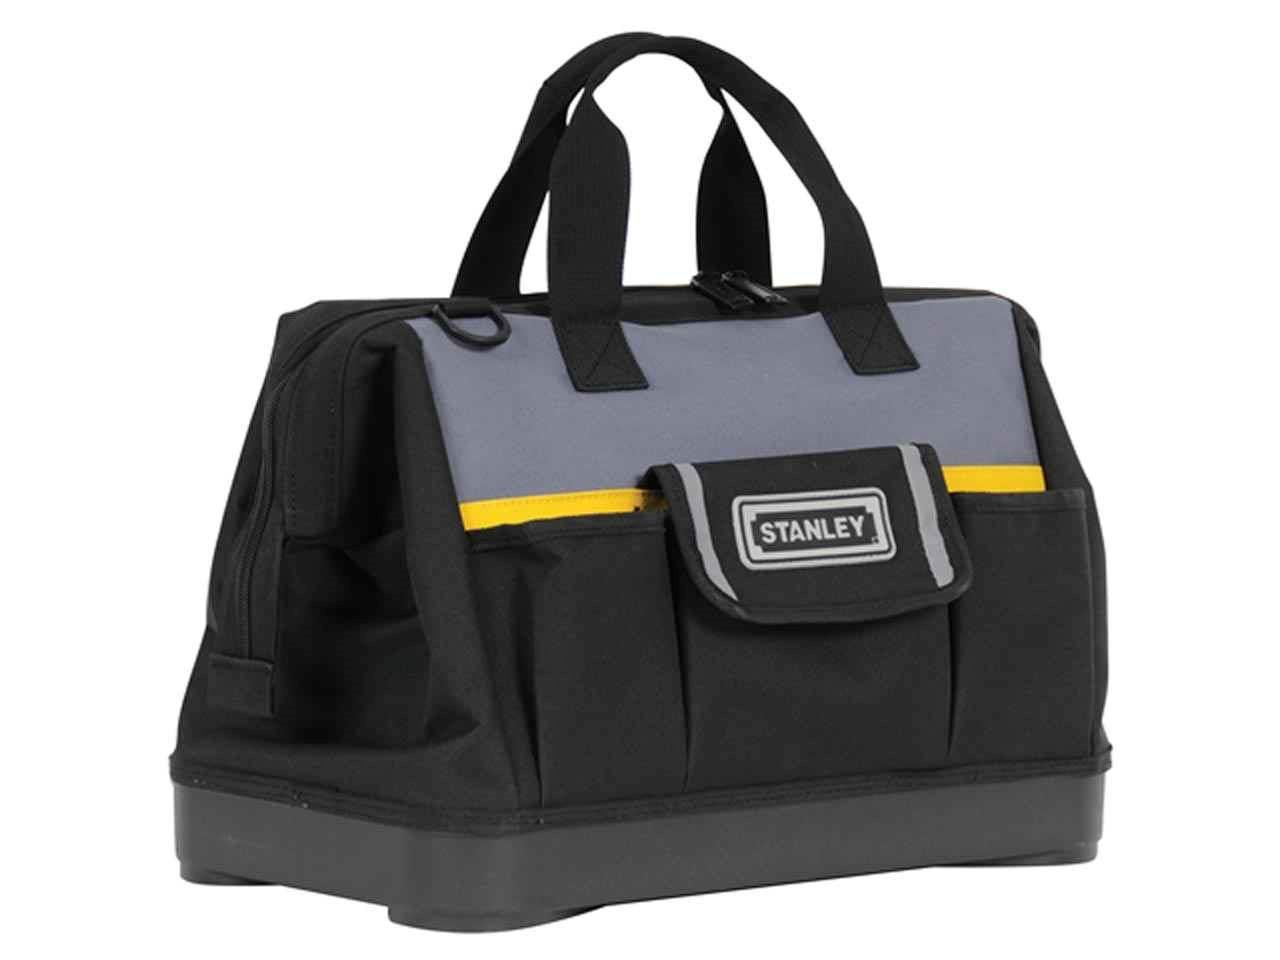 STANLEY STA196183 OPEN TOTE TOOL BAG 41CM / 16IN